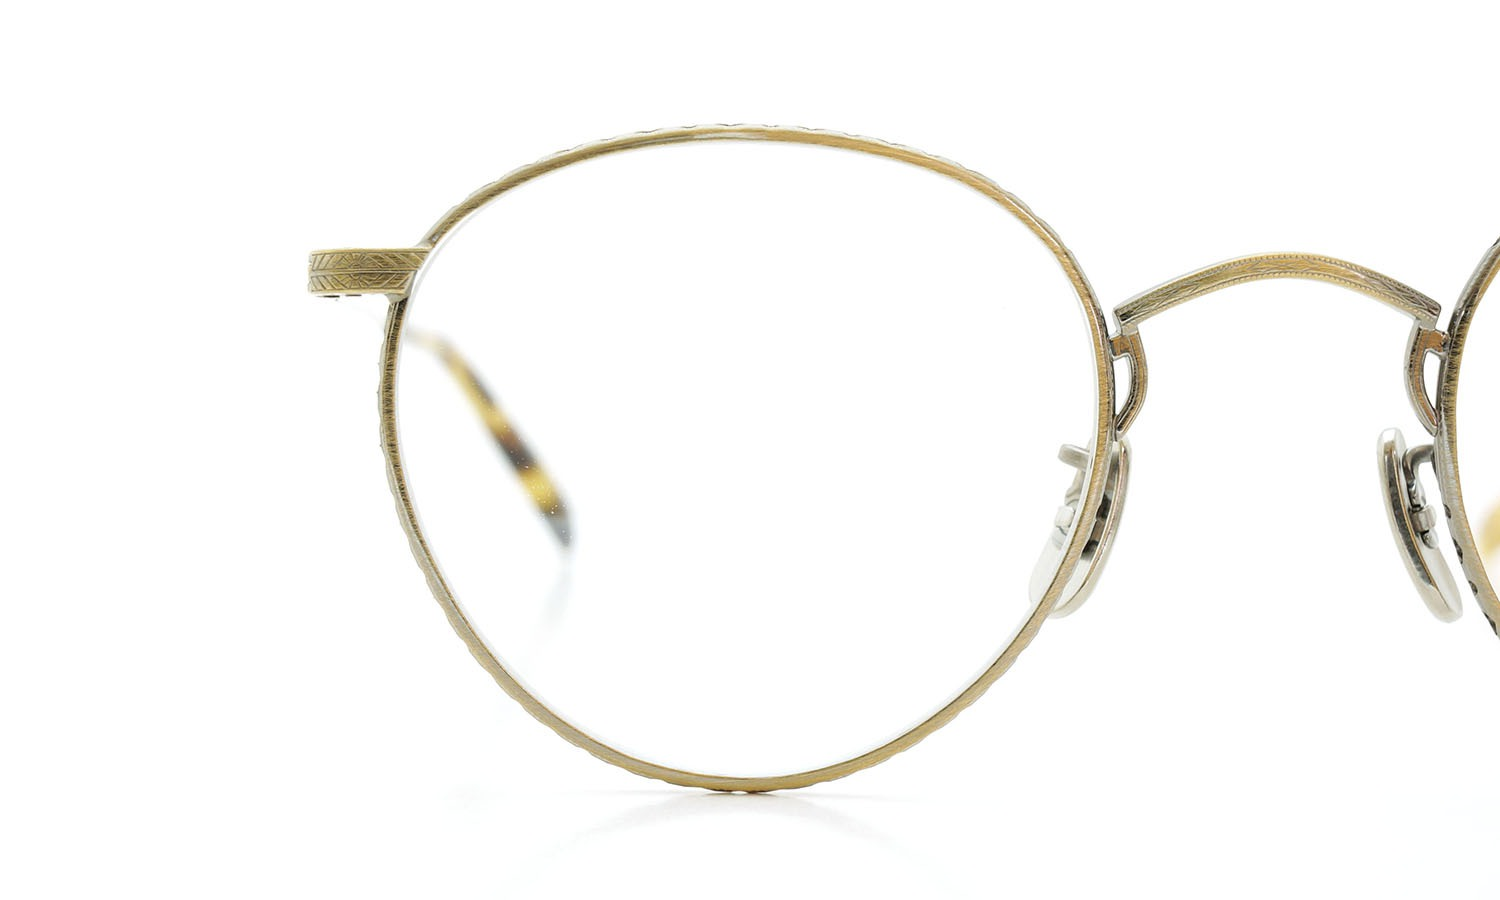 OLIVER PEOPLES (オリバーピープルズ) 2014年-2015秋冬 最新作メガネ OP-47T AG 17